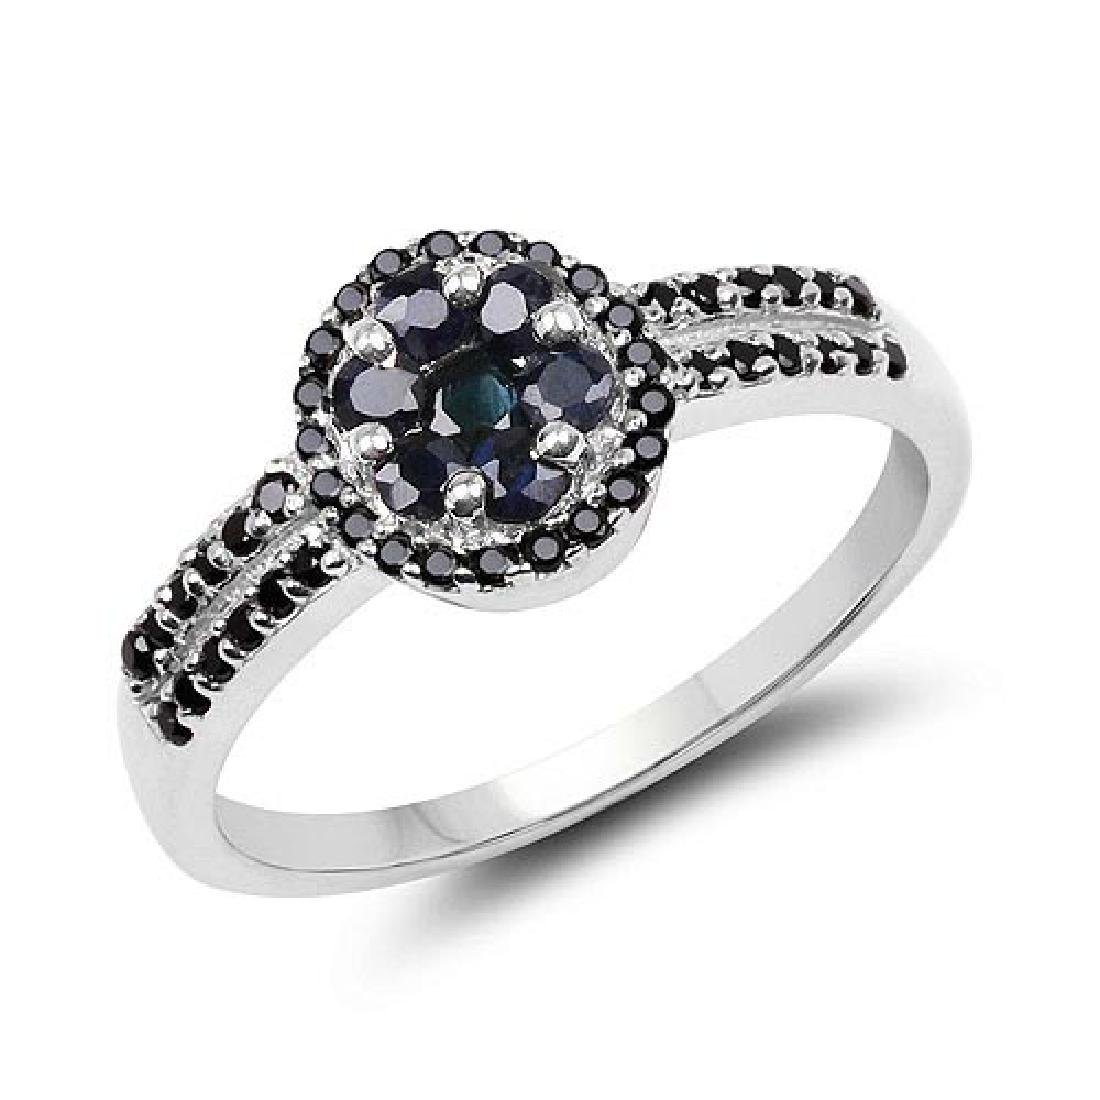 0.71 Carat Genuine Blue Sapphire and Black Spinel .925